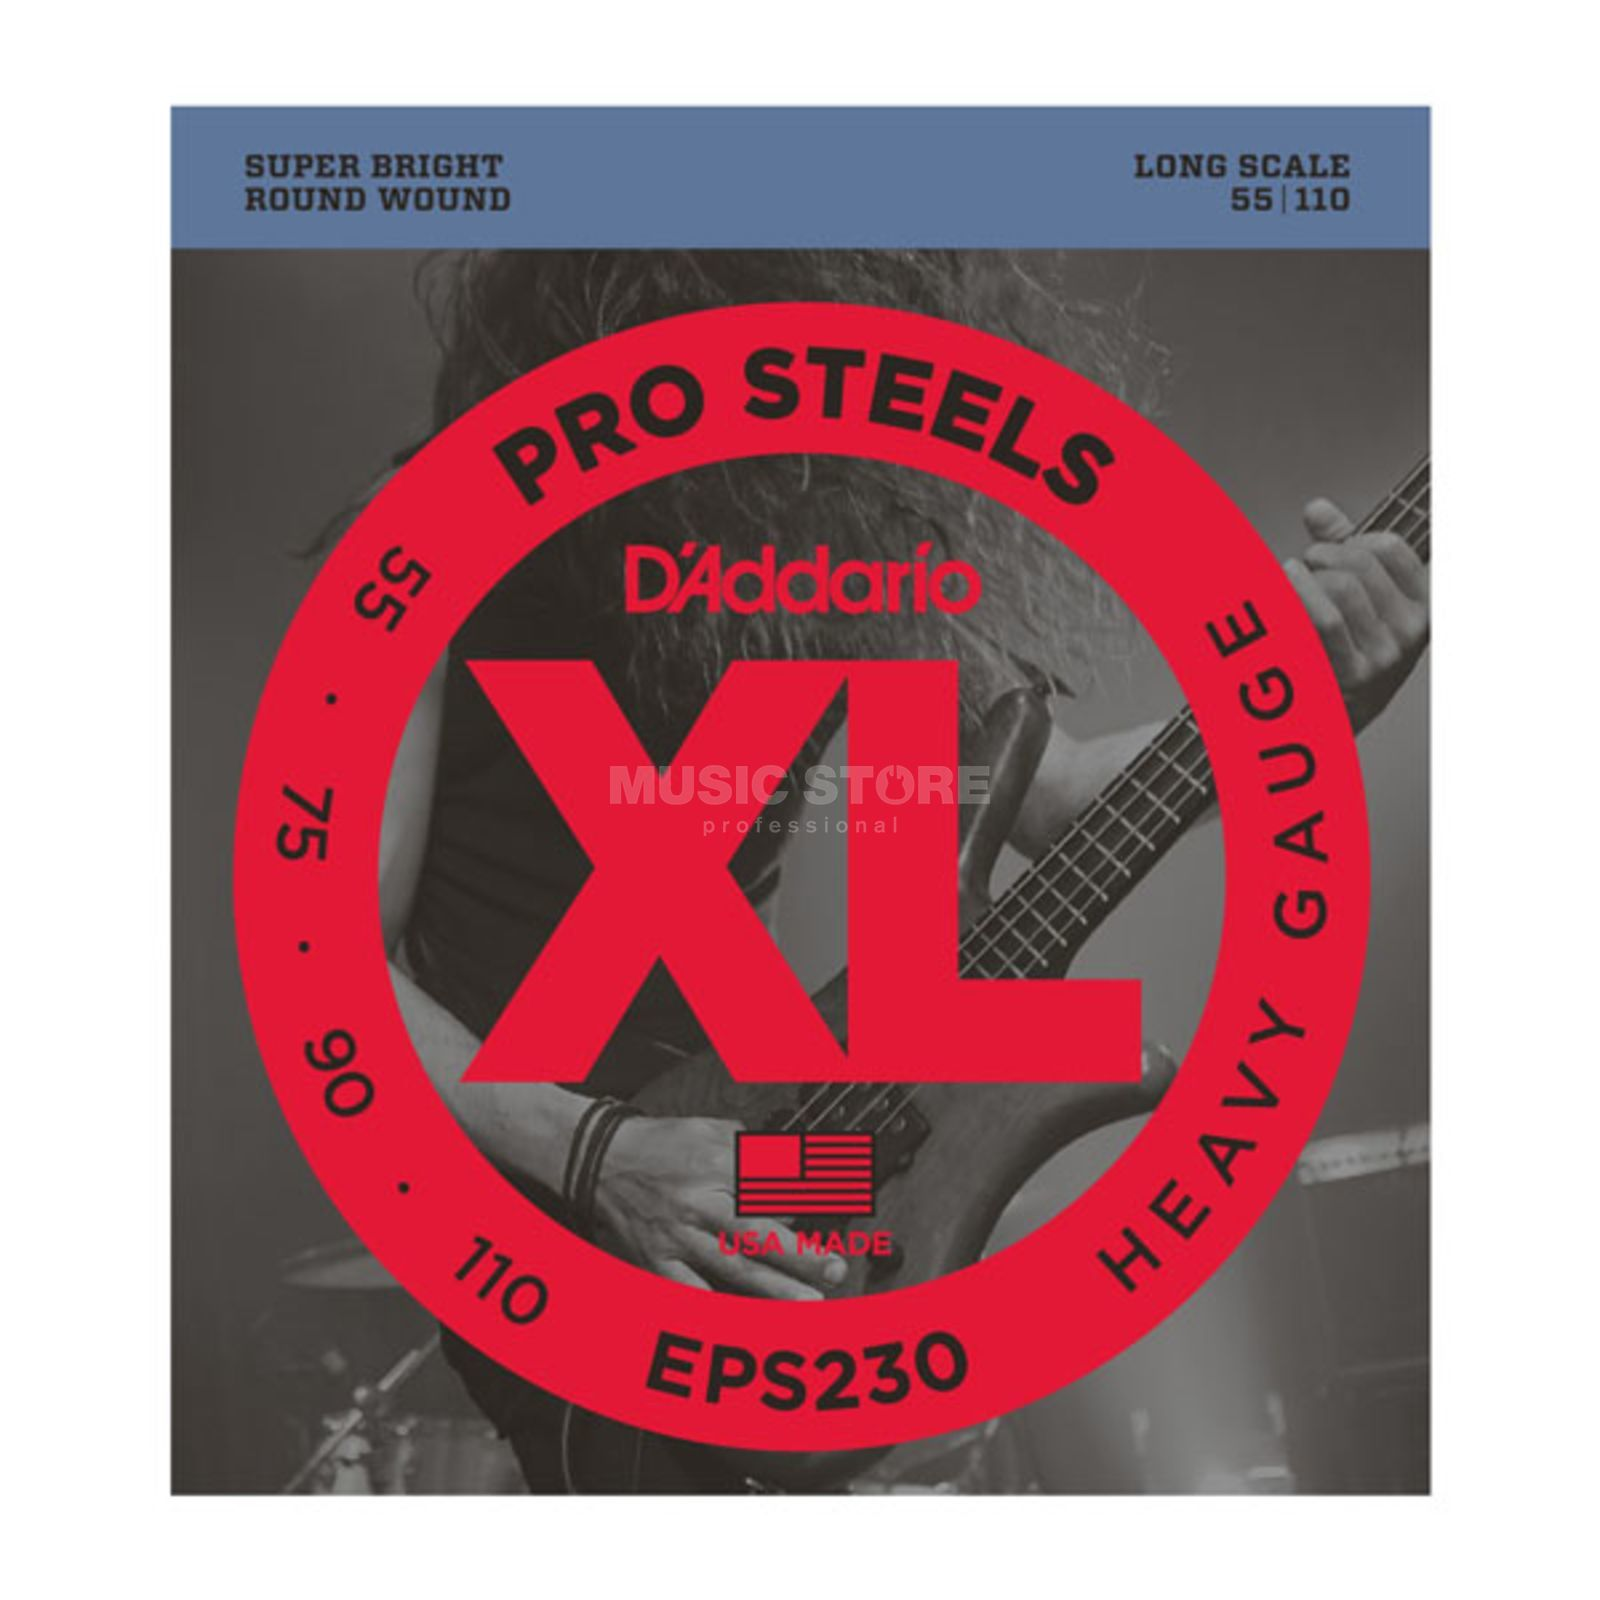 D'Addario 4er bas XL Pro Steels 55-110 55-75-90-110, EPS230 Productafbeelding